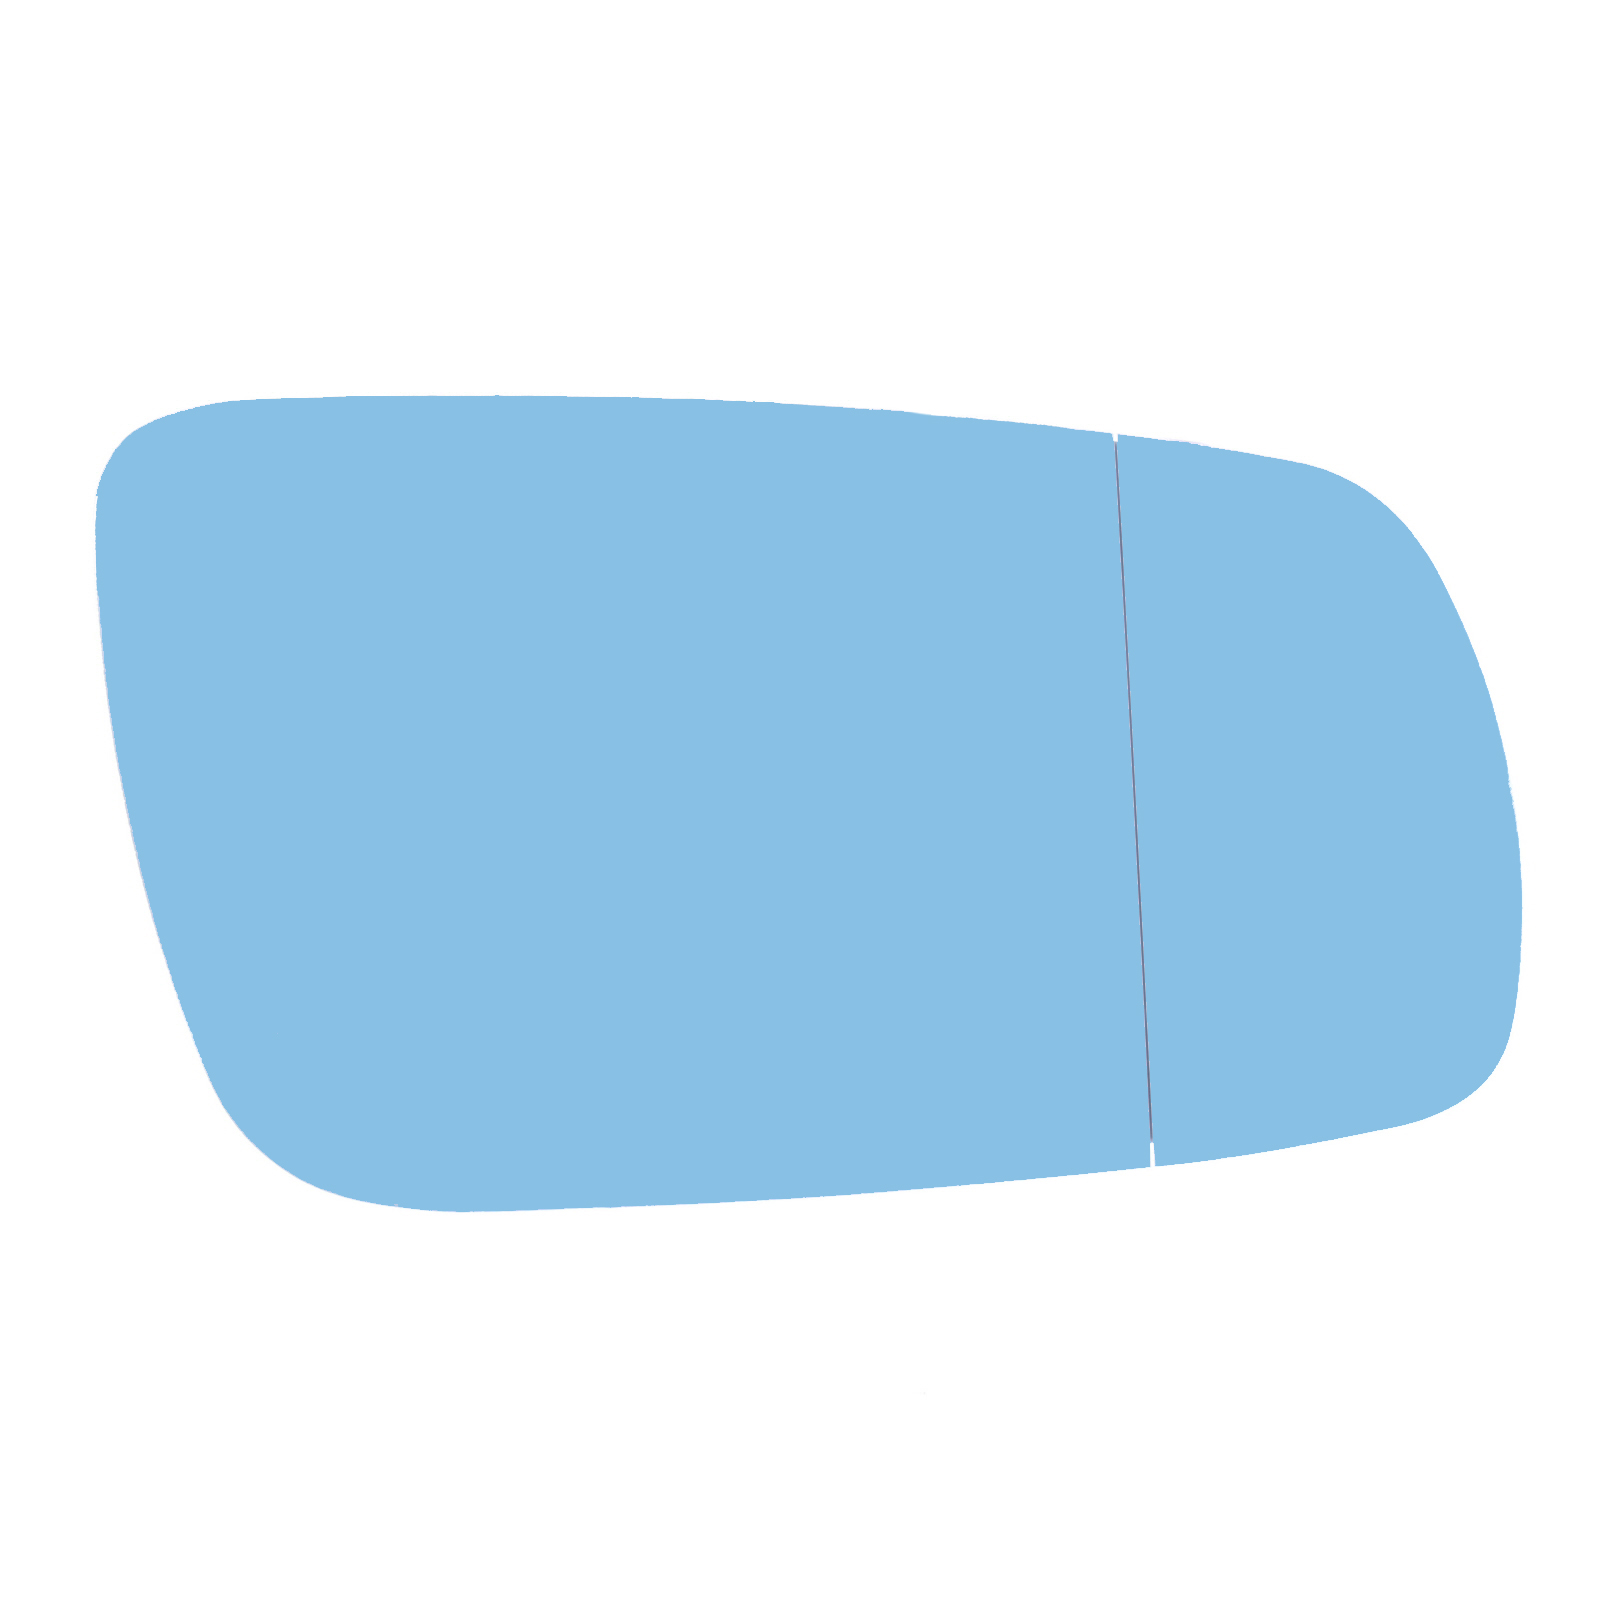 Audi A6 C4 4A Saloon 1994-1997 Heated Aspherical Blue Mirror Glass Drivers Side